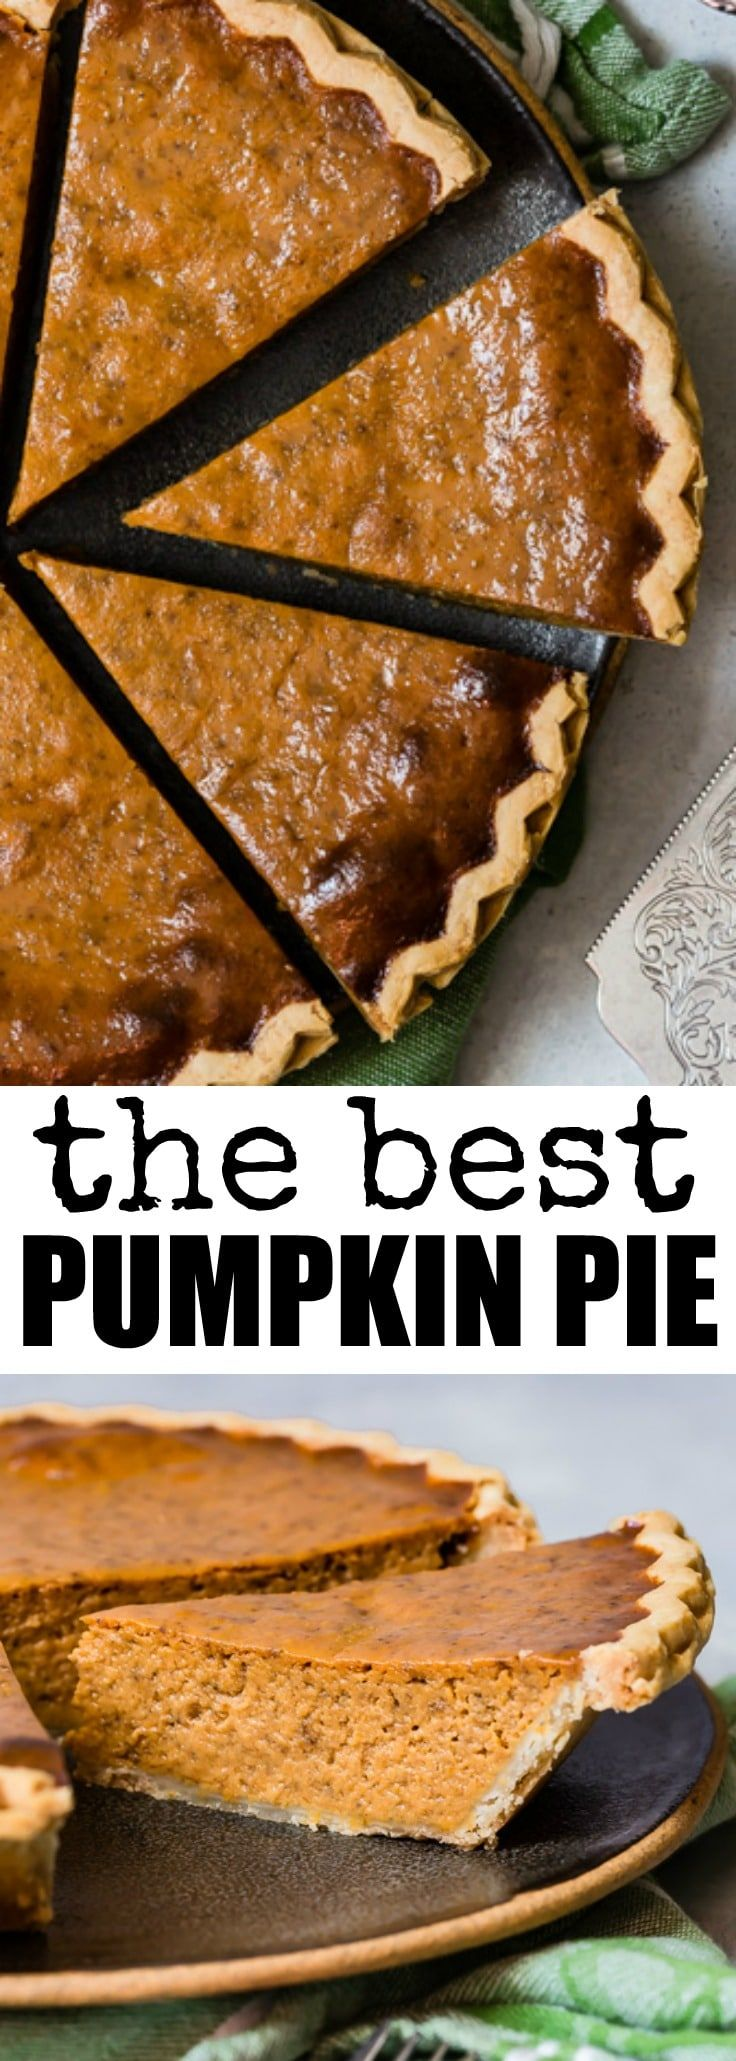 The Best Pumpkin Pie Recipe | Culinary Hill